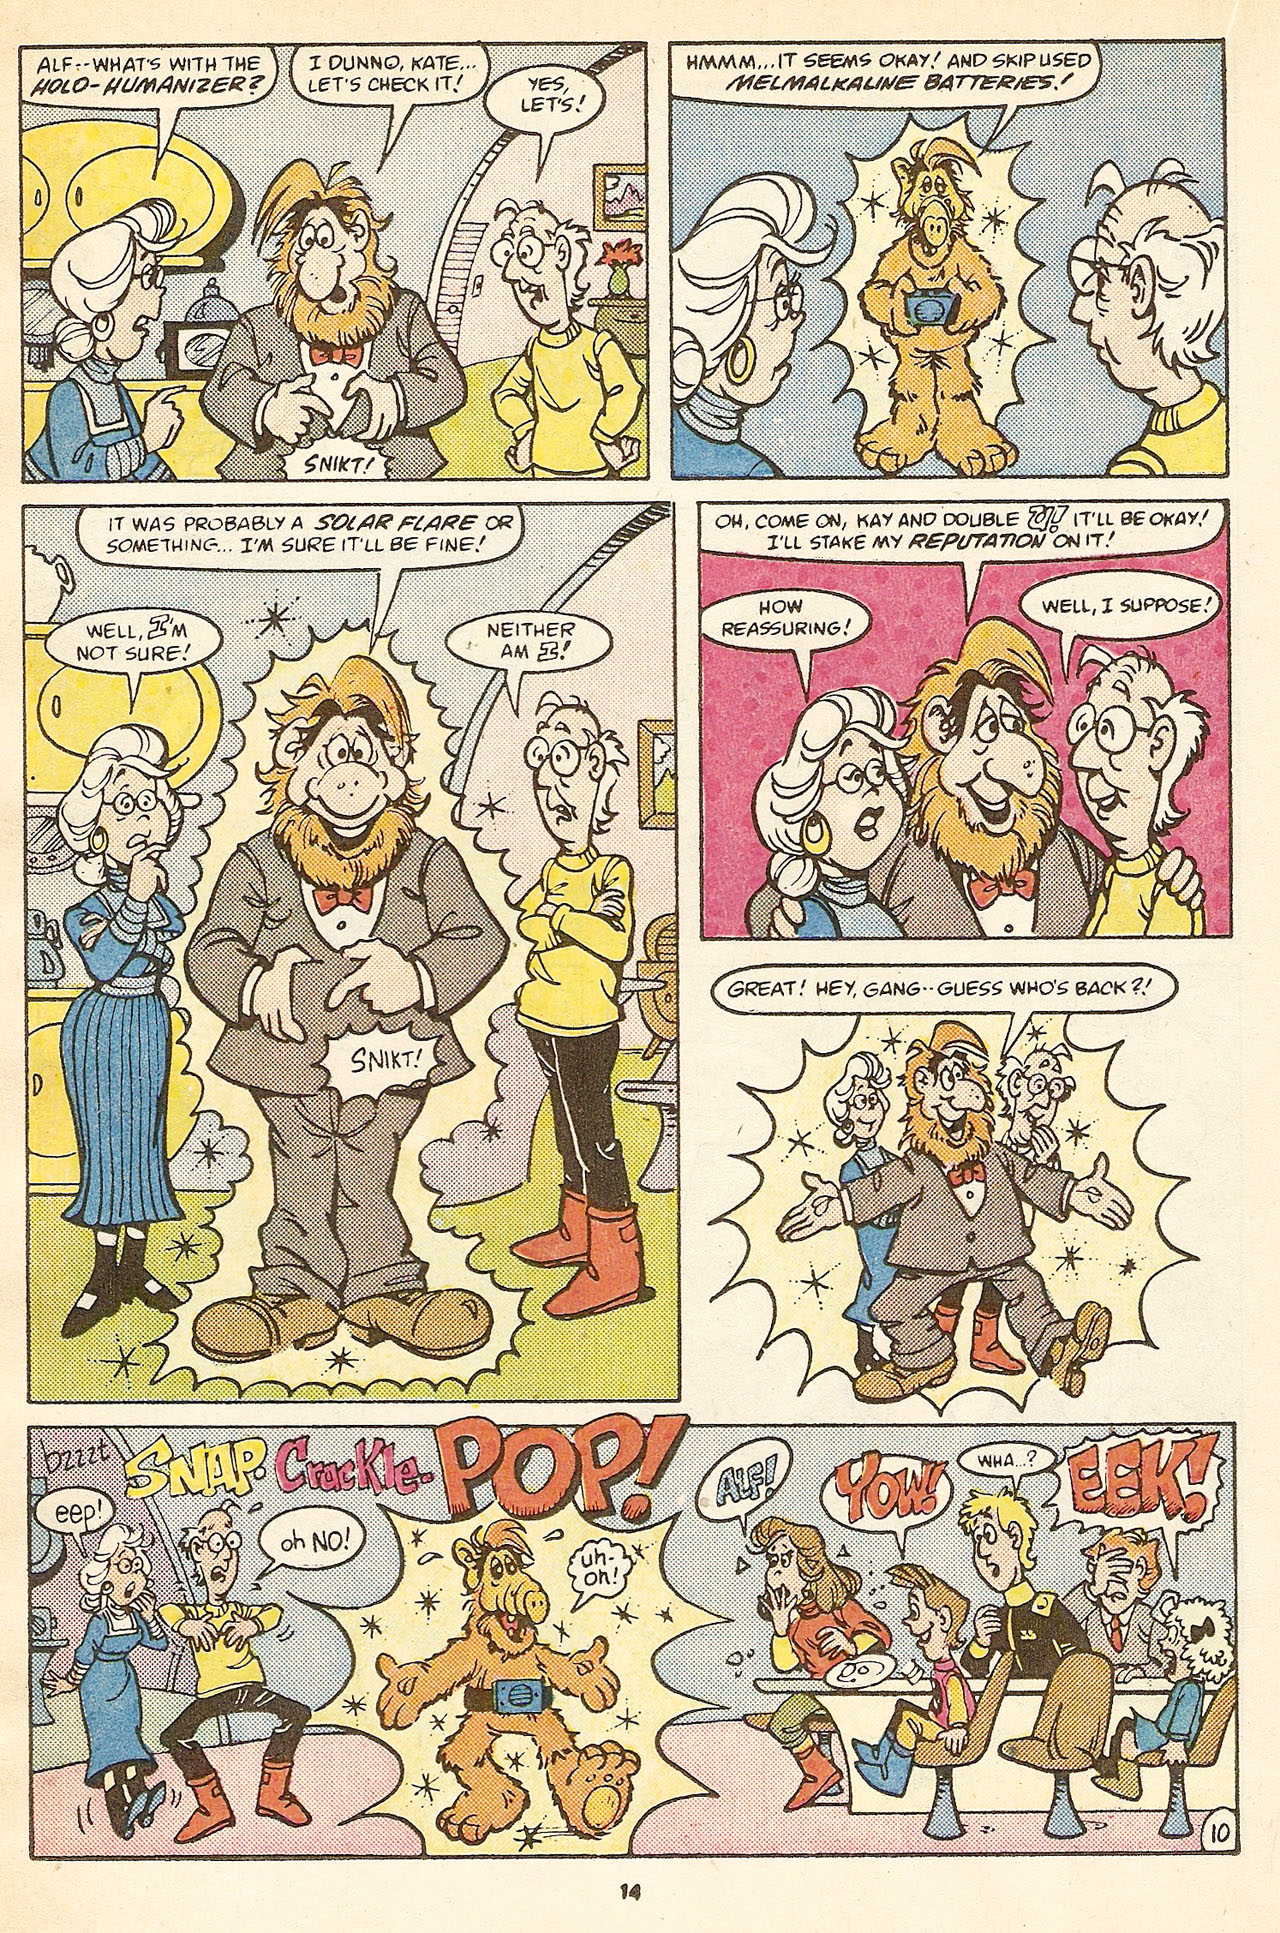 Read online ALF comic -  Issue #17 - 16